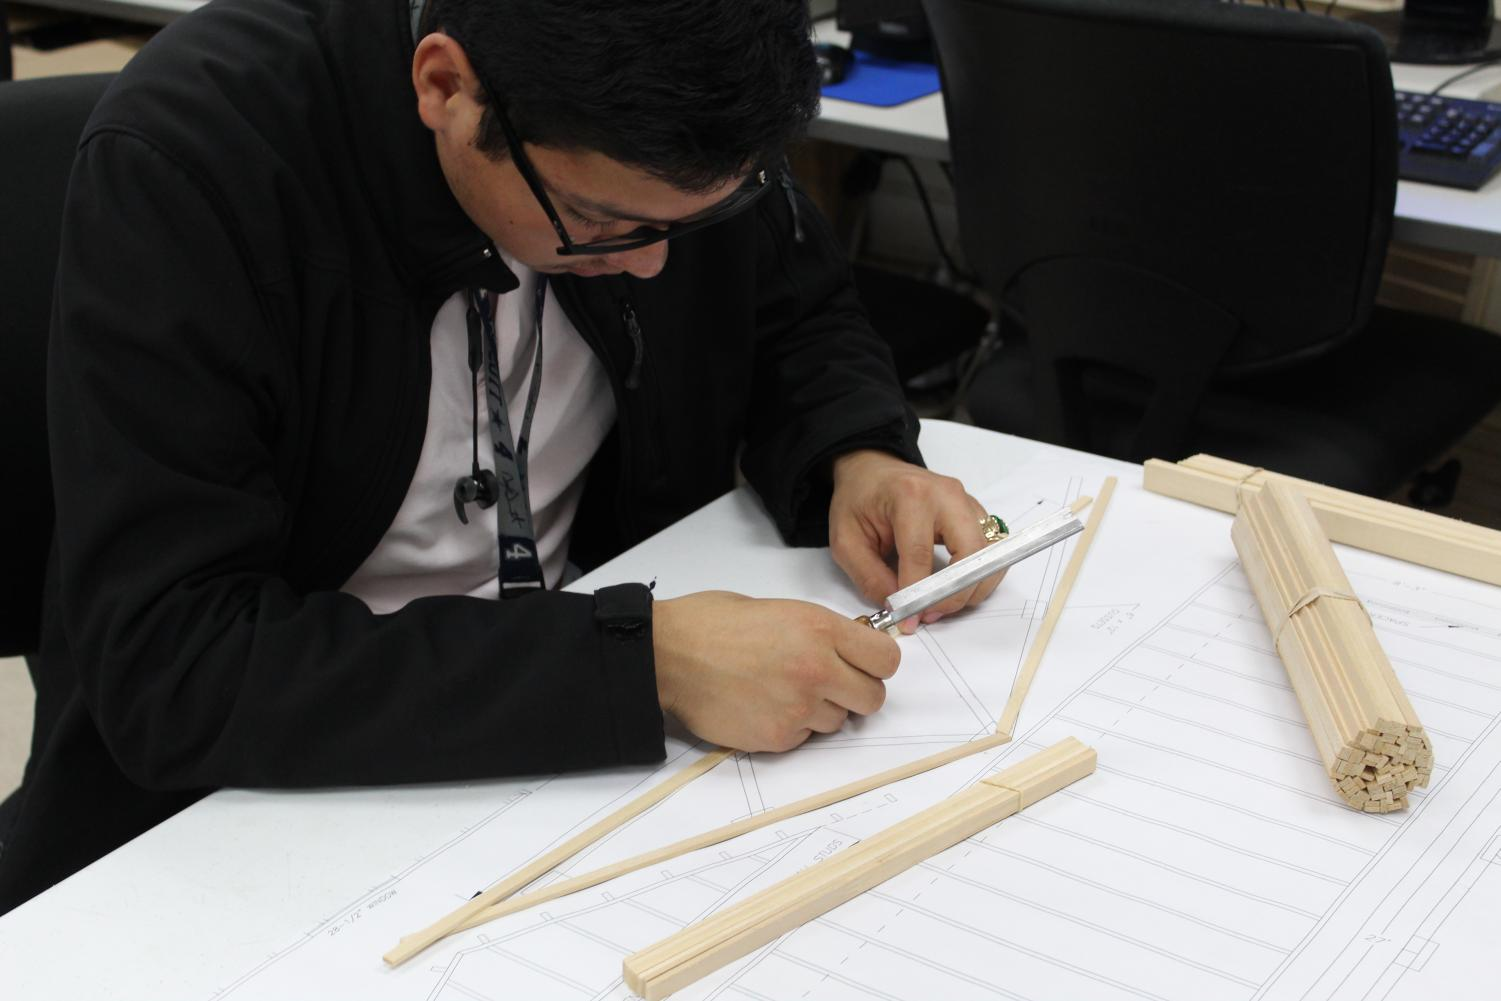 Junior Miguel Munoz takes the provided floor plan and wood to construct trusses for his group's model house.